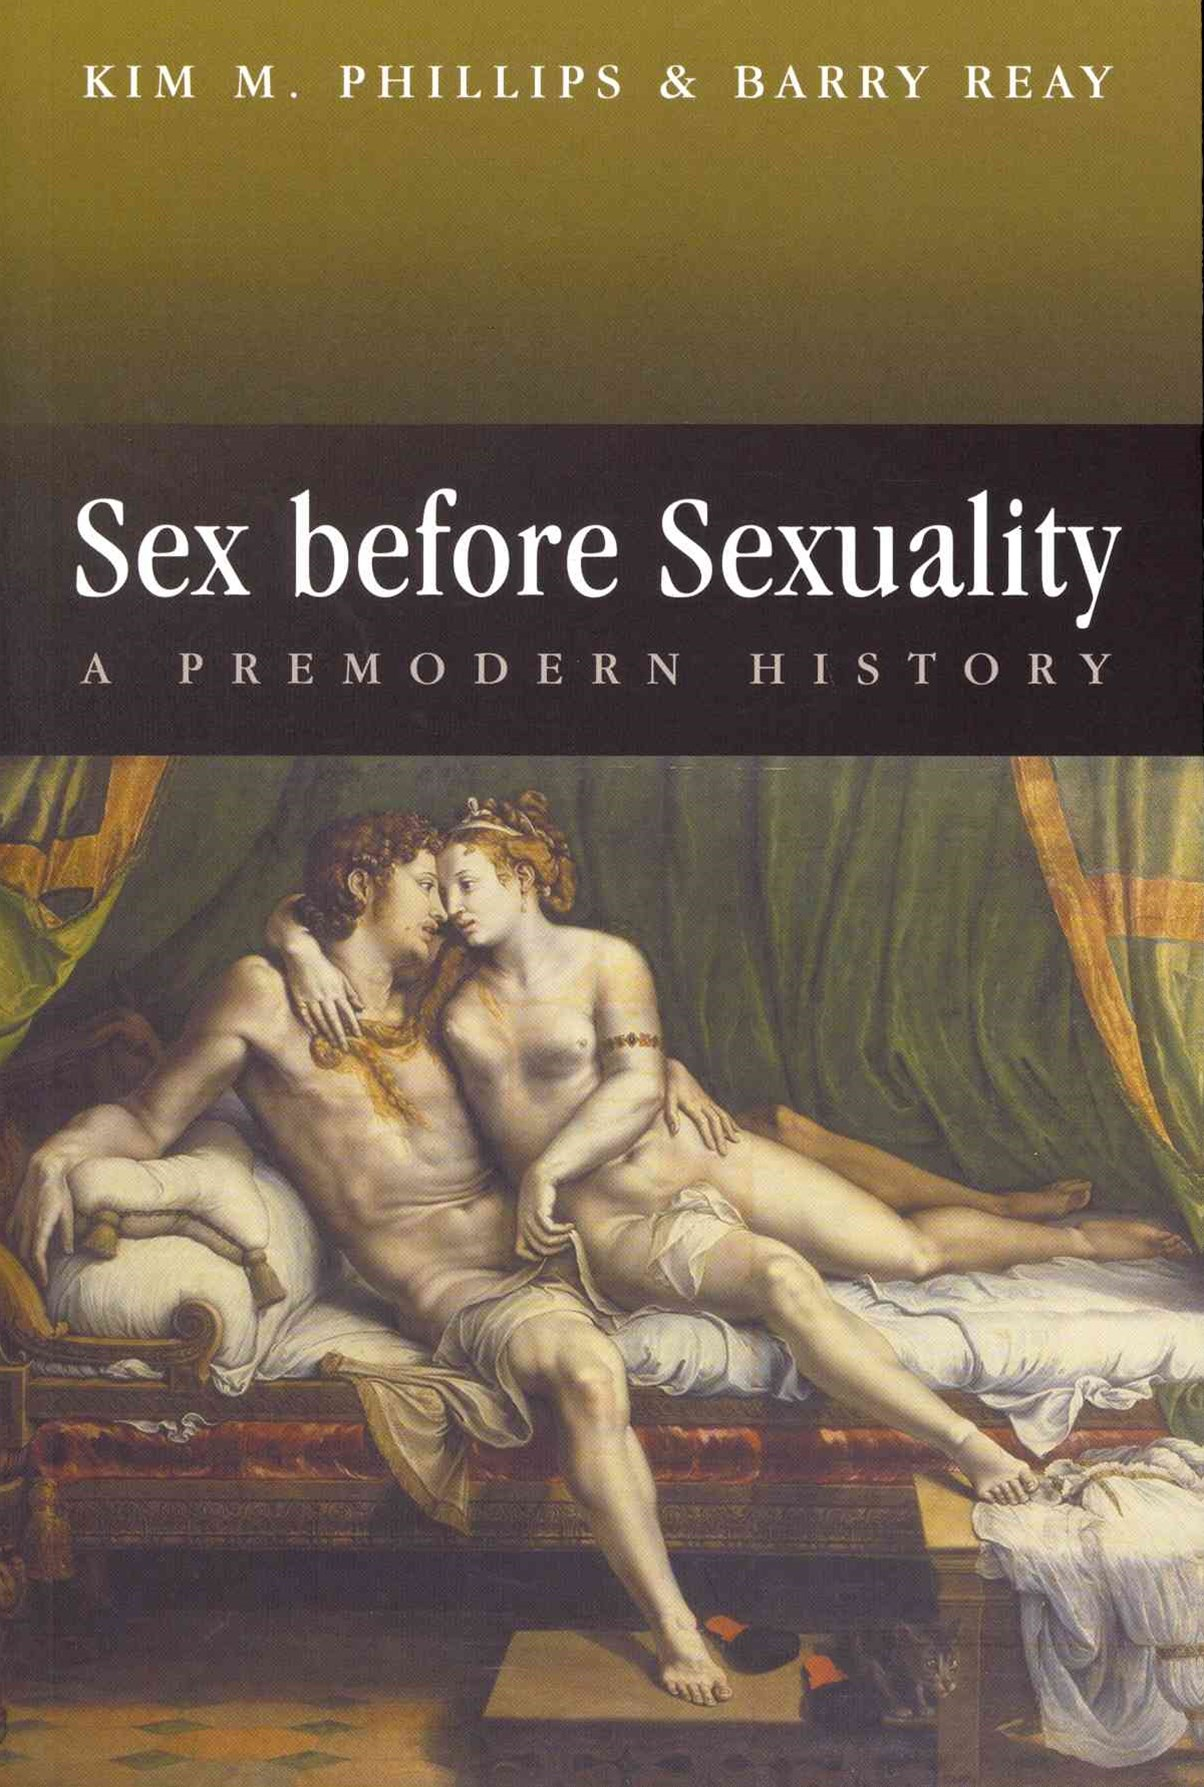 Sex Before Sexuality - a Premodern History